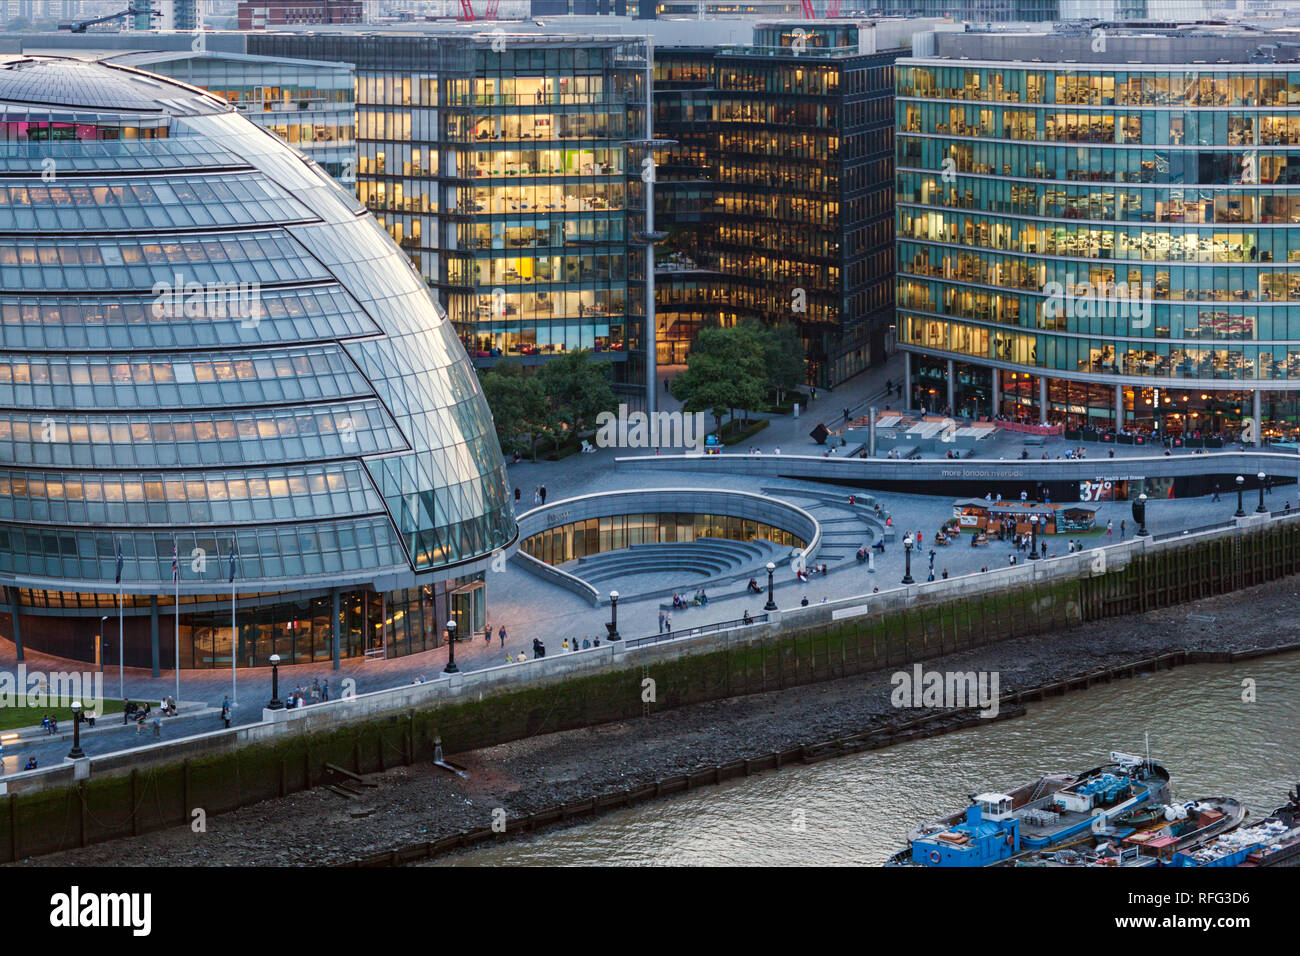 City Hall - HQ of the London Mayor - Stock Image